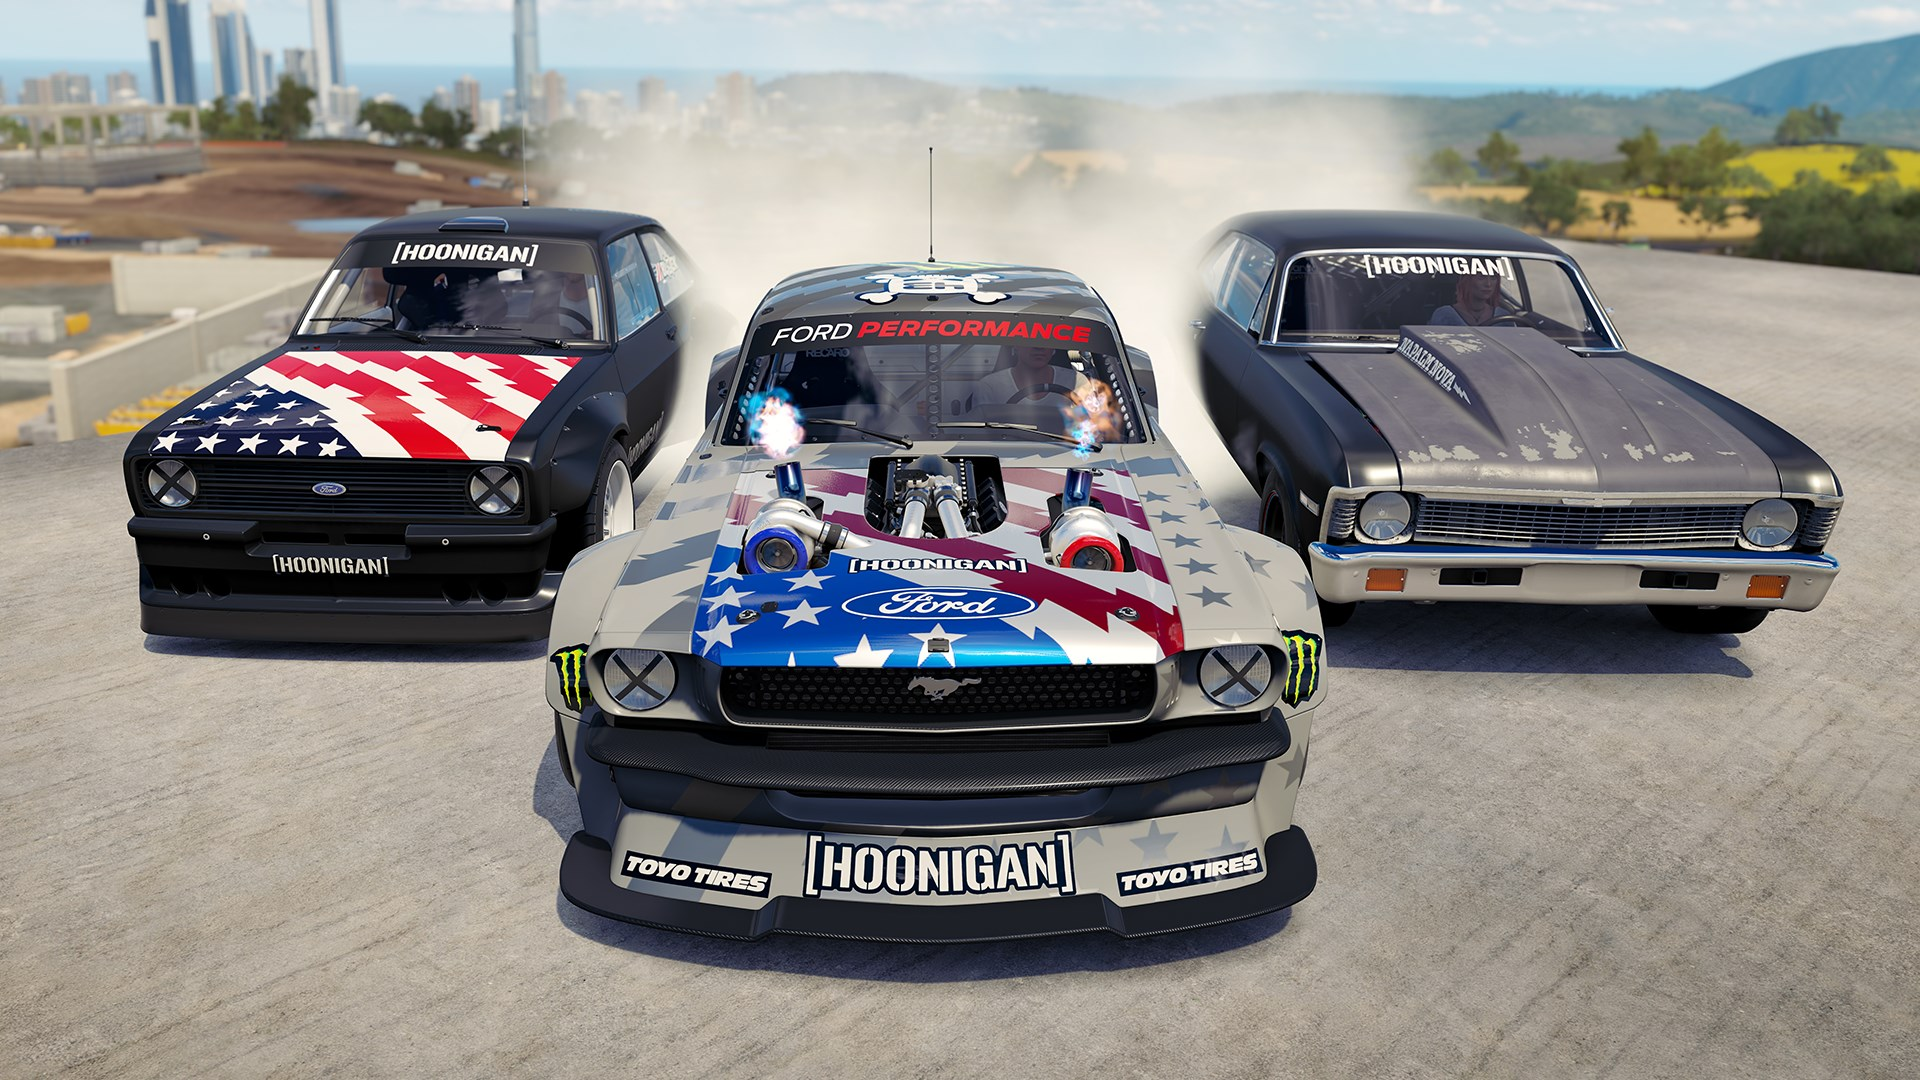 buy forza horizon 3 hoonigan car pack microsoft store en sg. Black Bedroom Furniture Sets. Home Design Ideas